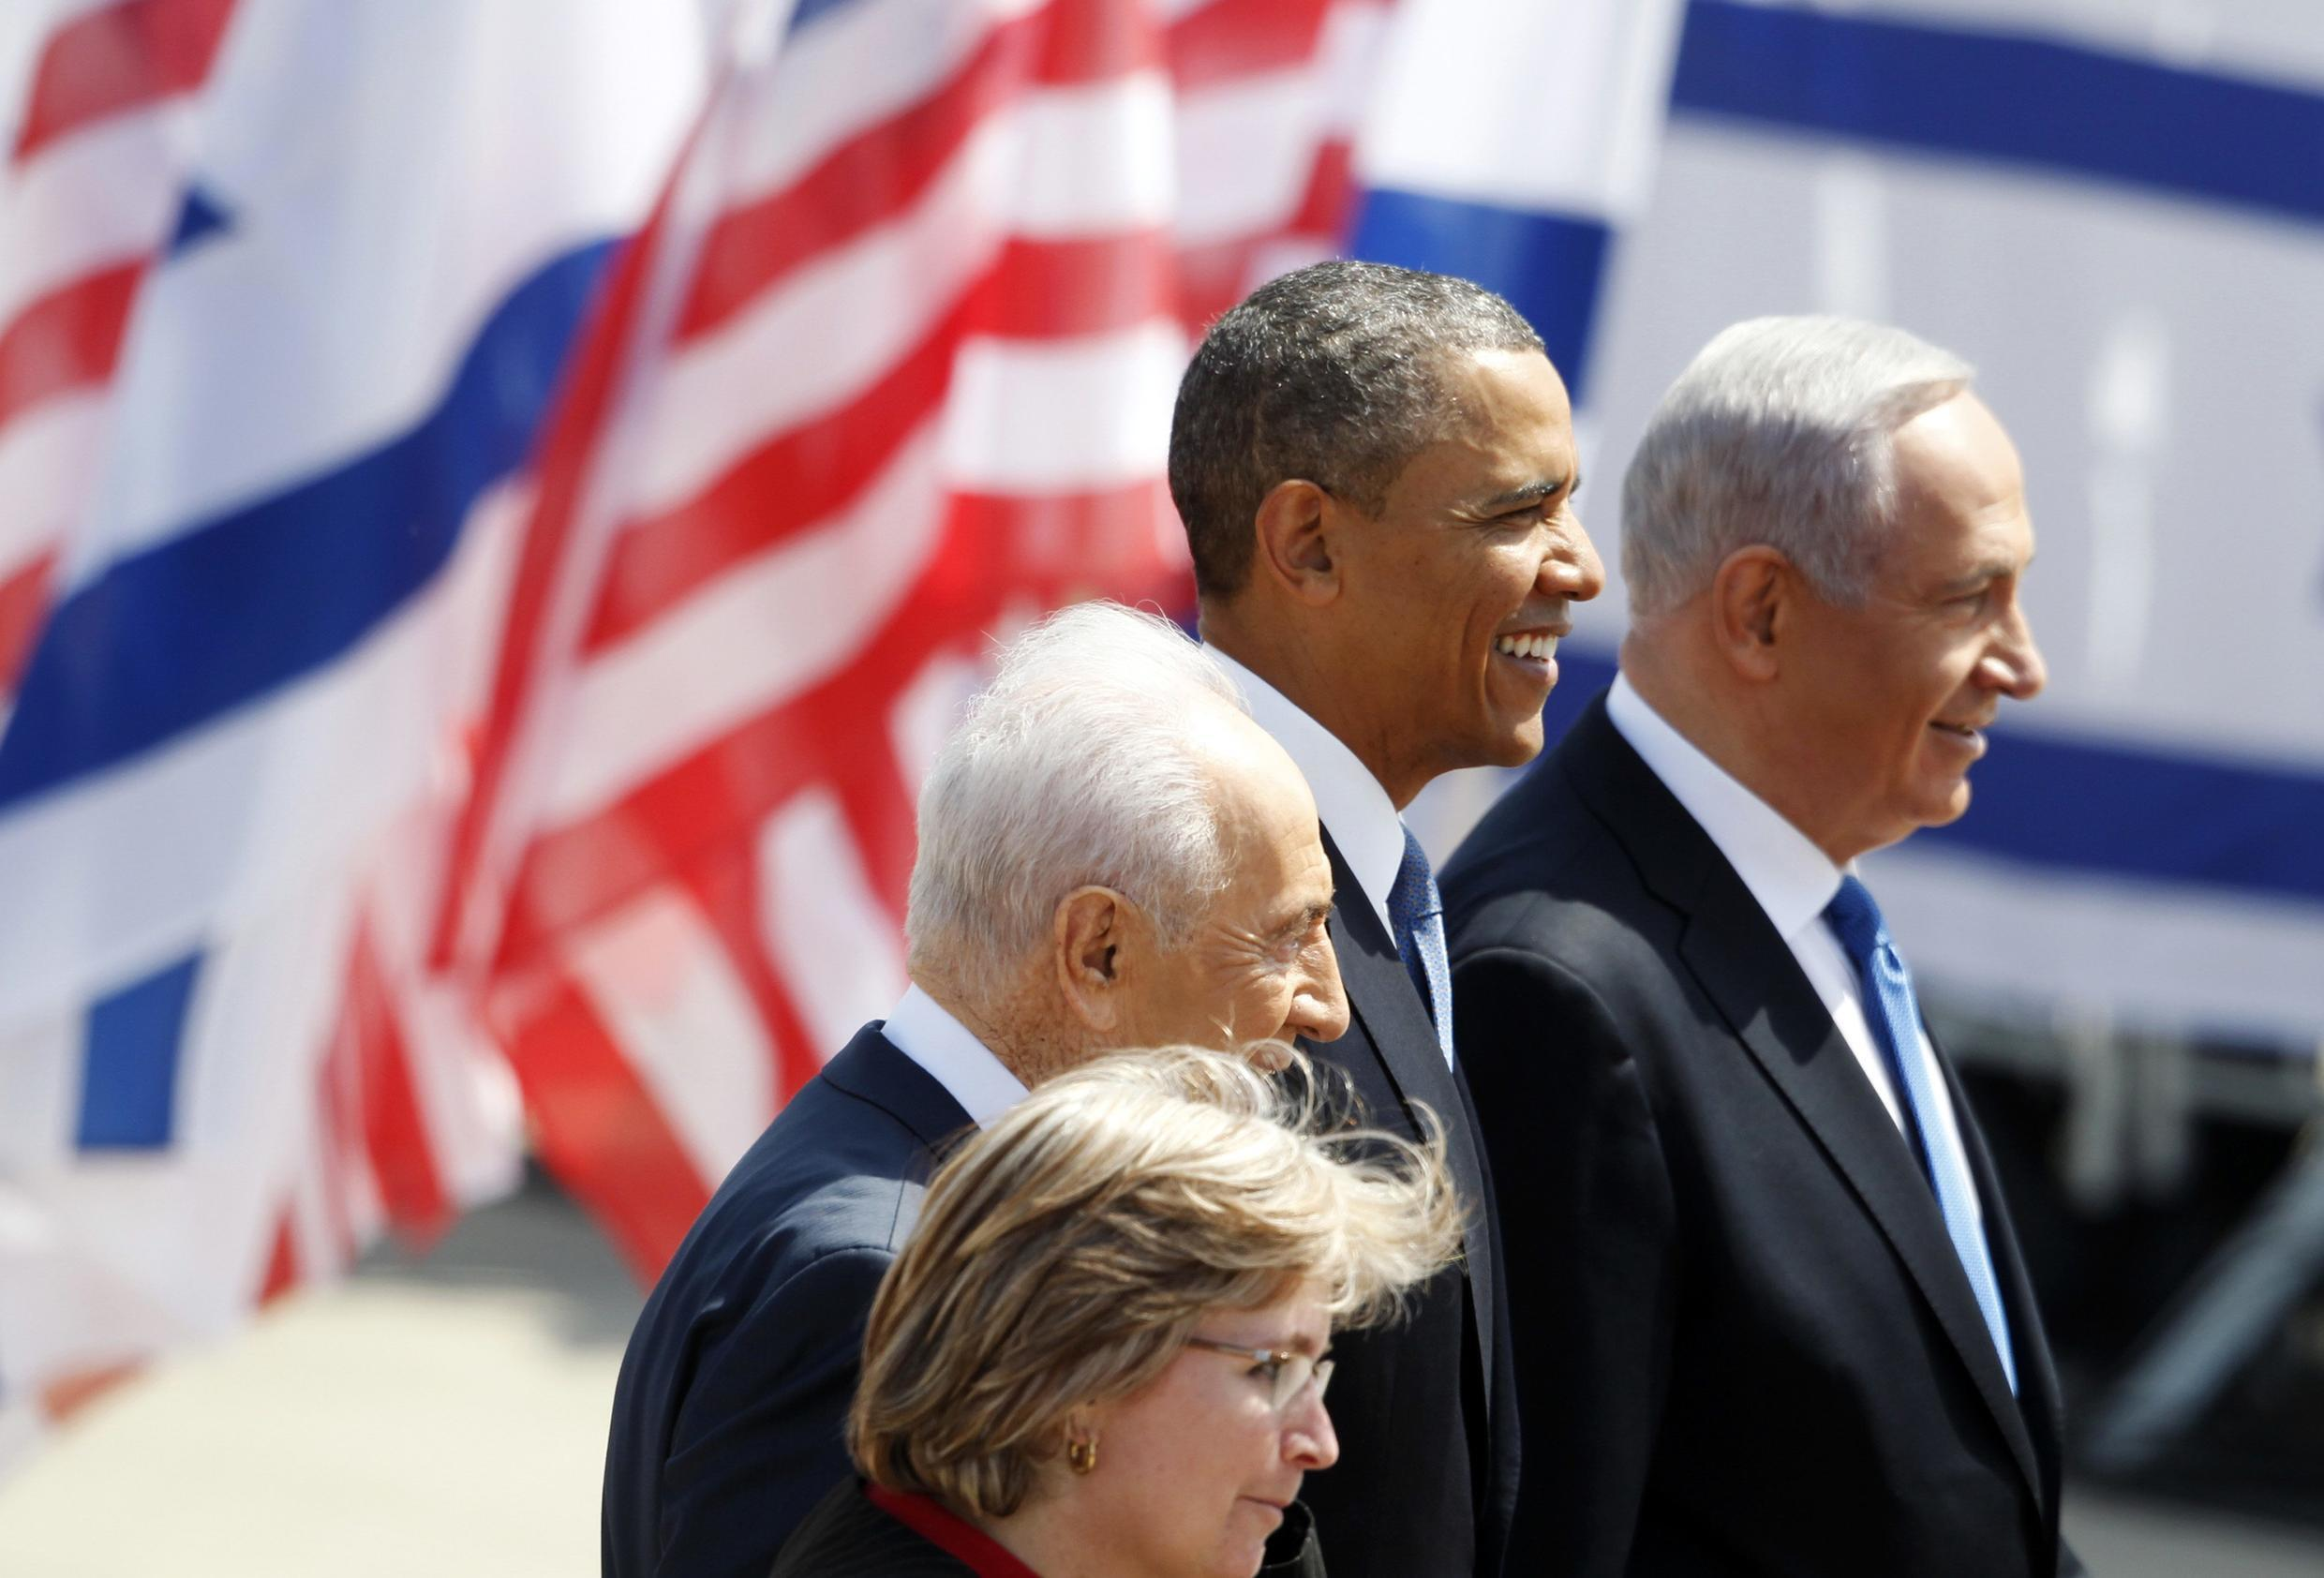 President Barack Obama (C) stands with Israel's President Shimon Peres and Prime Minister Benjamin Netanyahu (R)